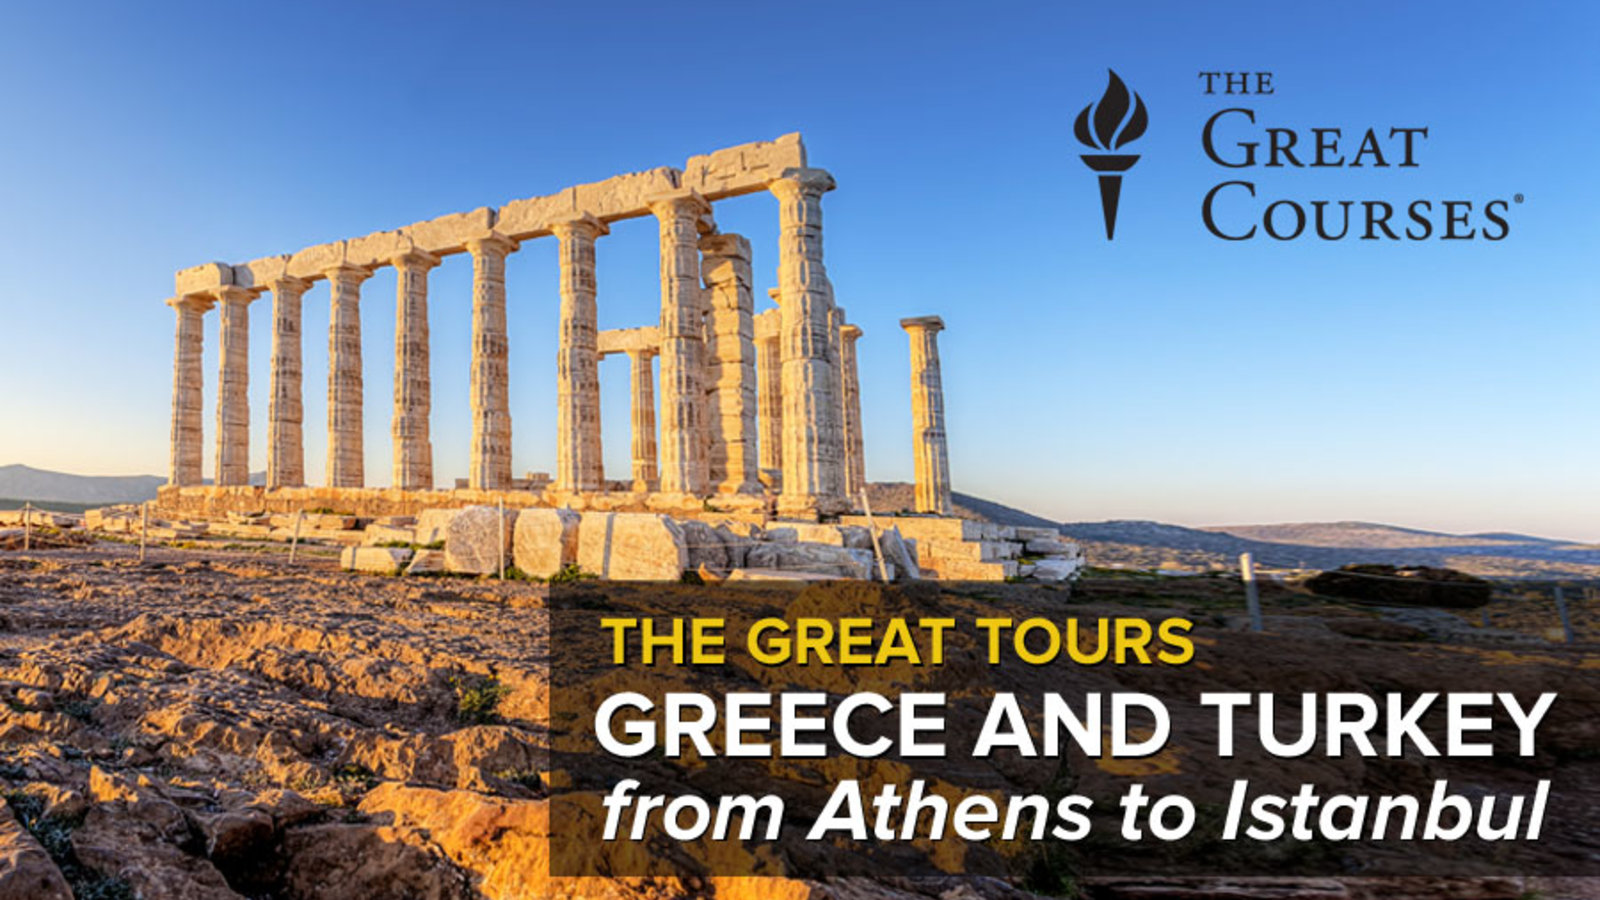 Great Tours: Greece and Turkey - From Athens to Istanbul